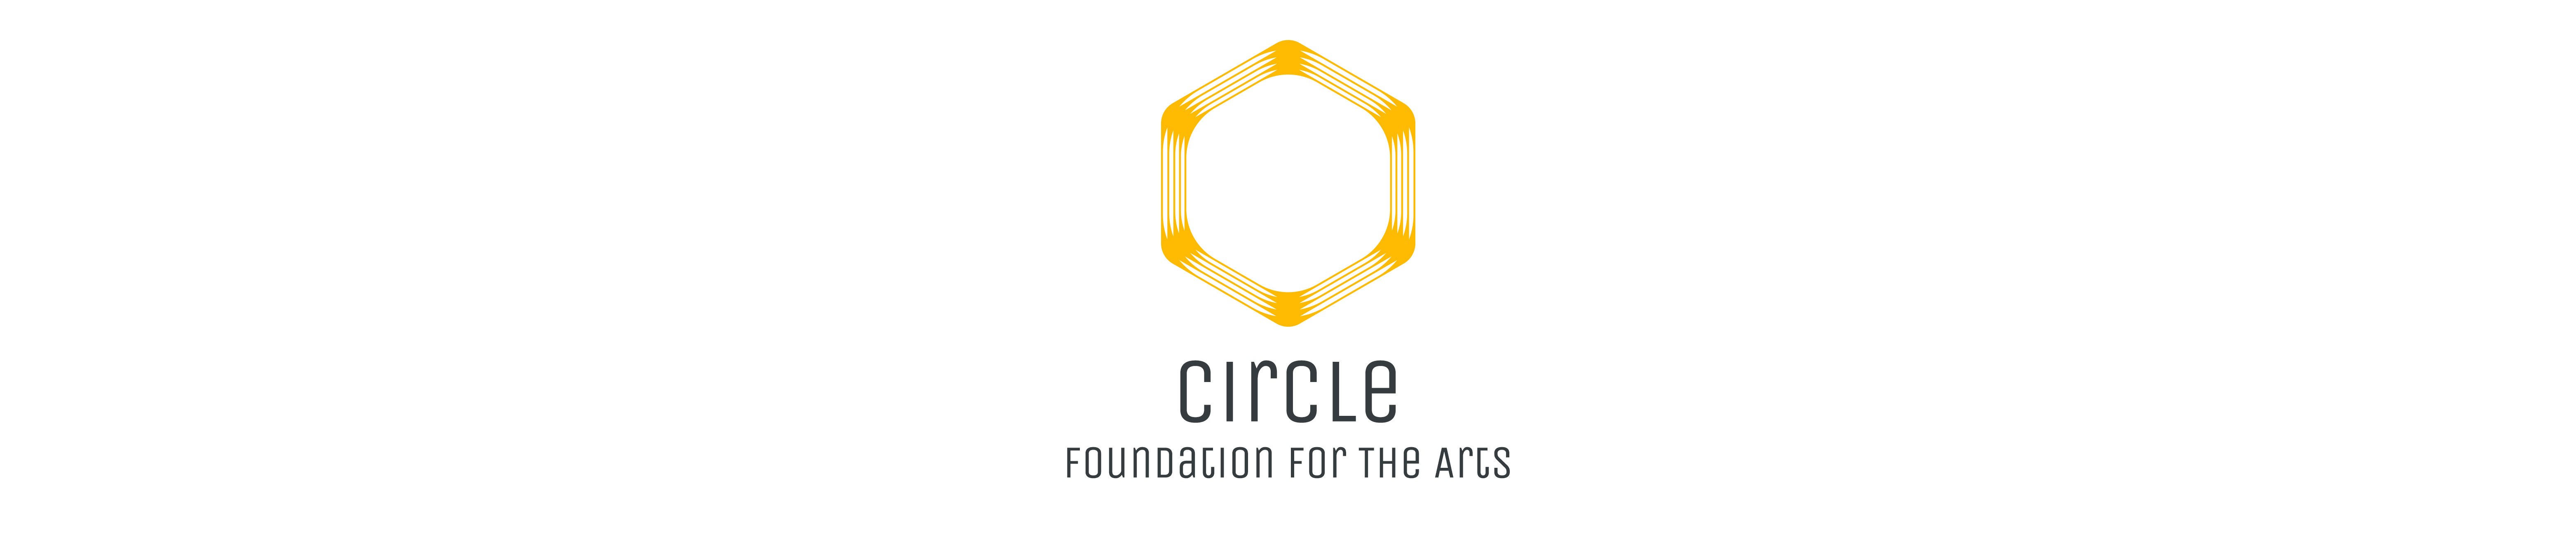 Circle Foundation for the Arts